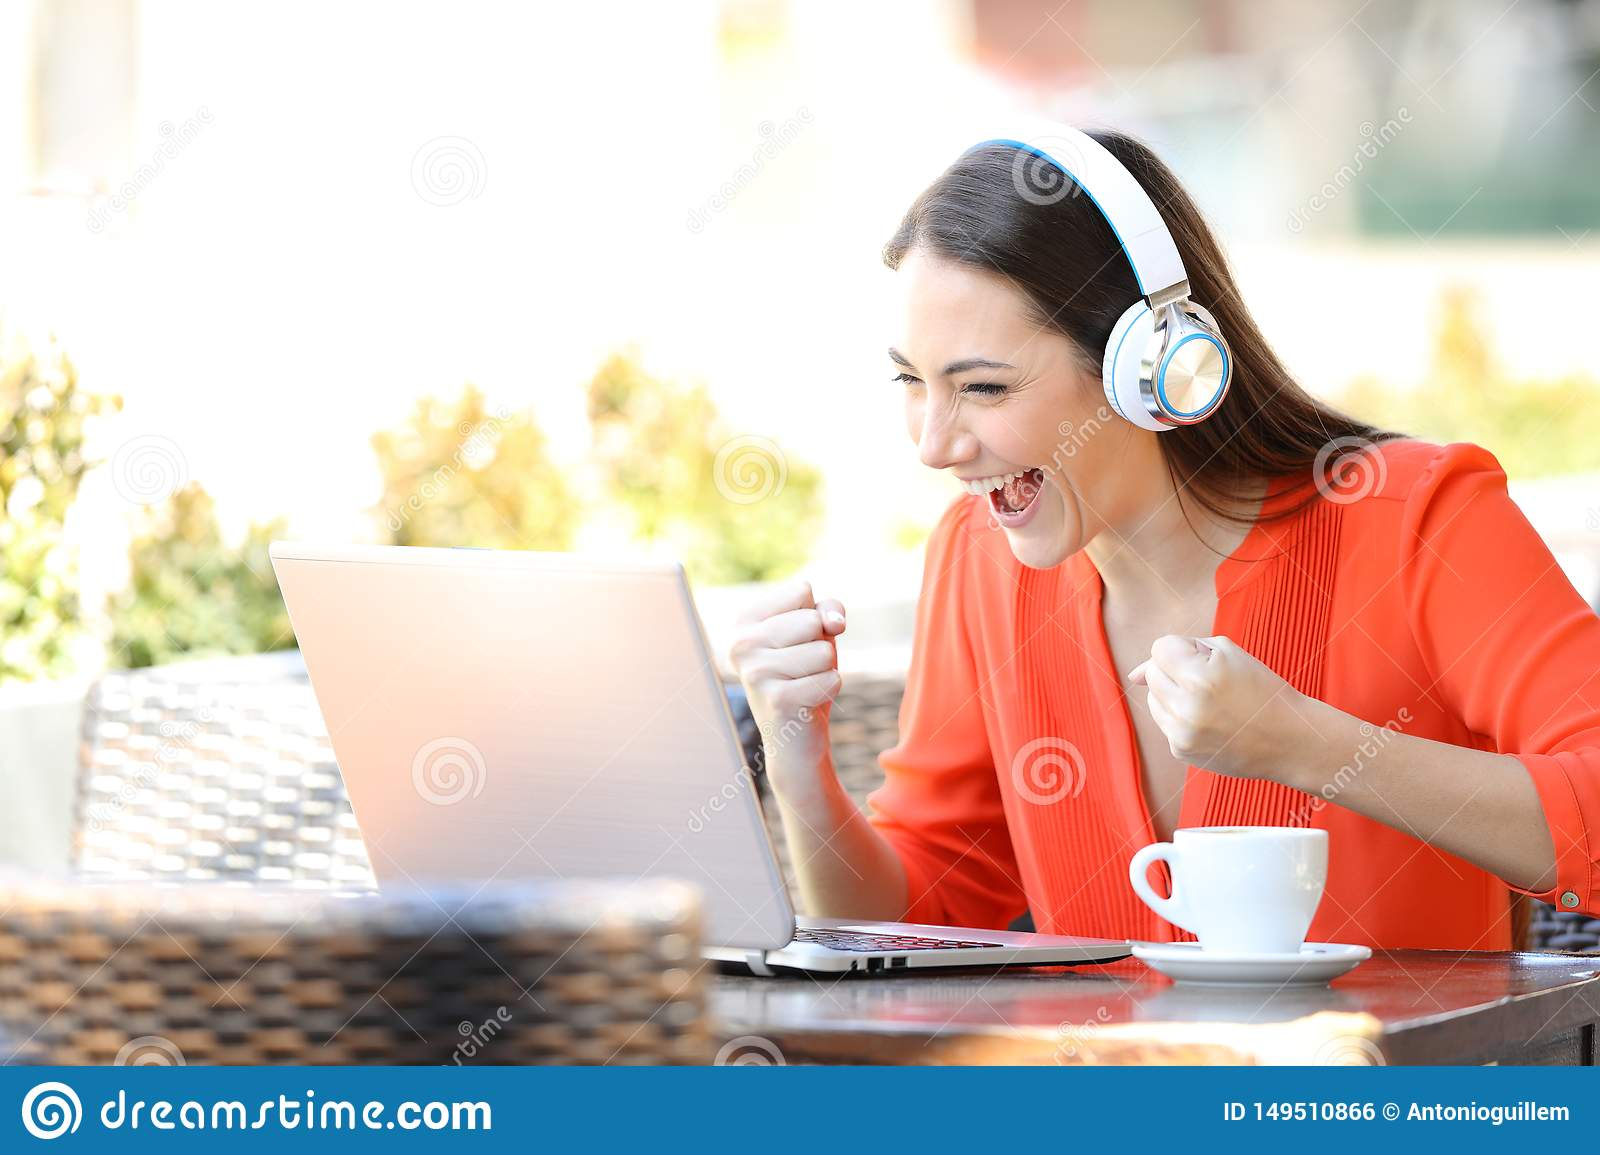 Excited woman watching and listening media on laptop